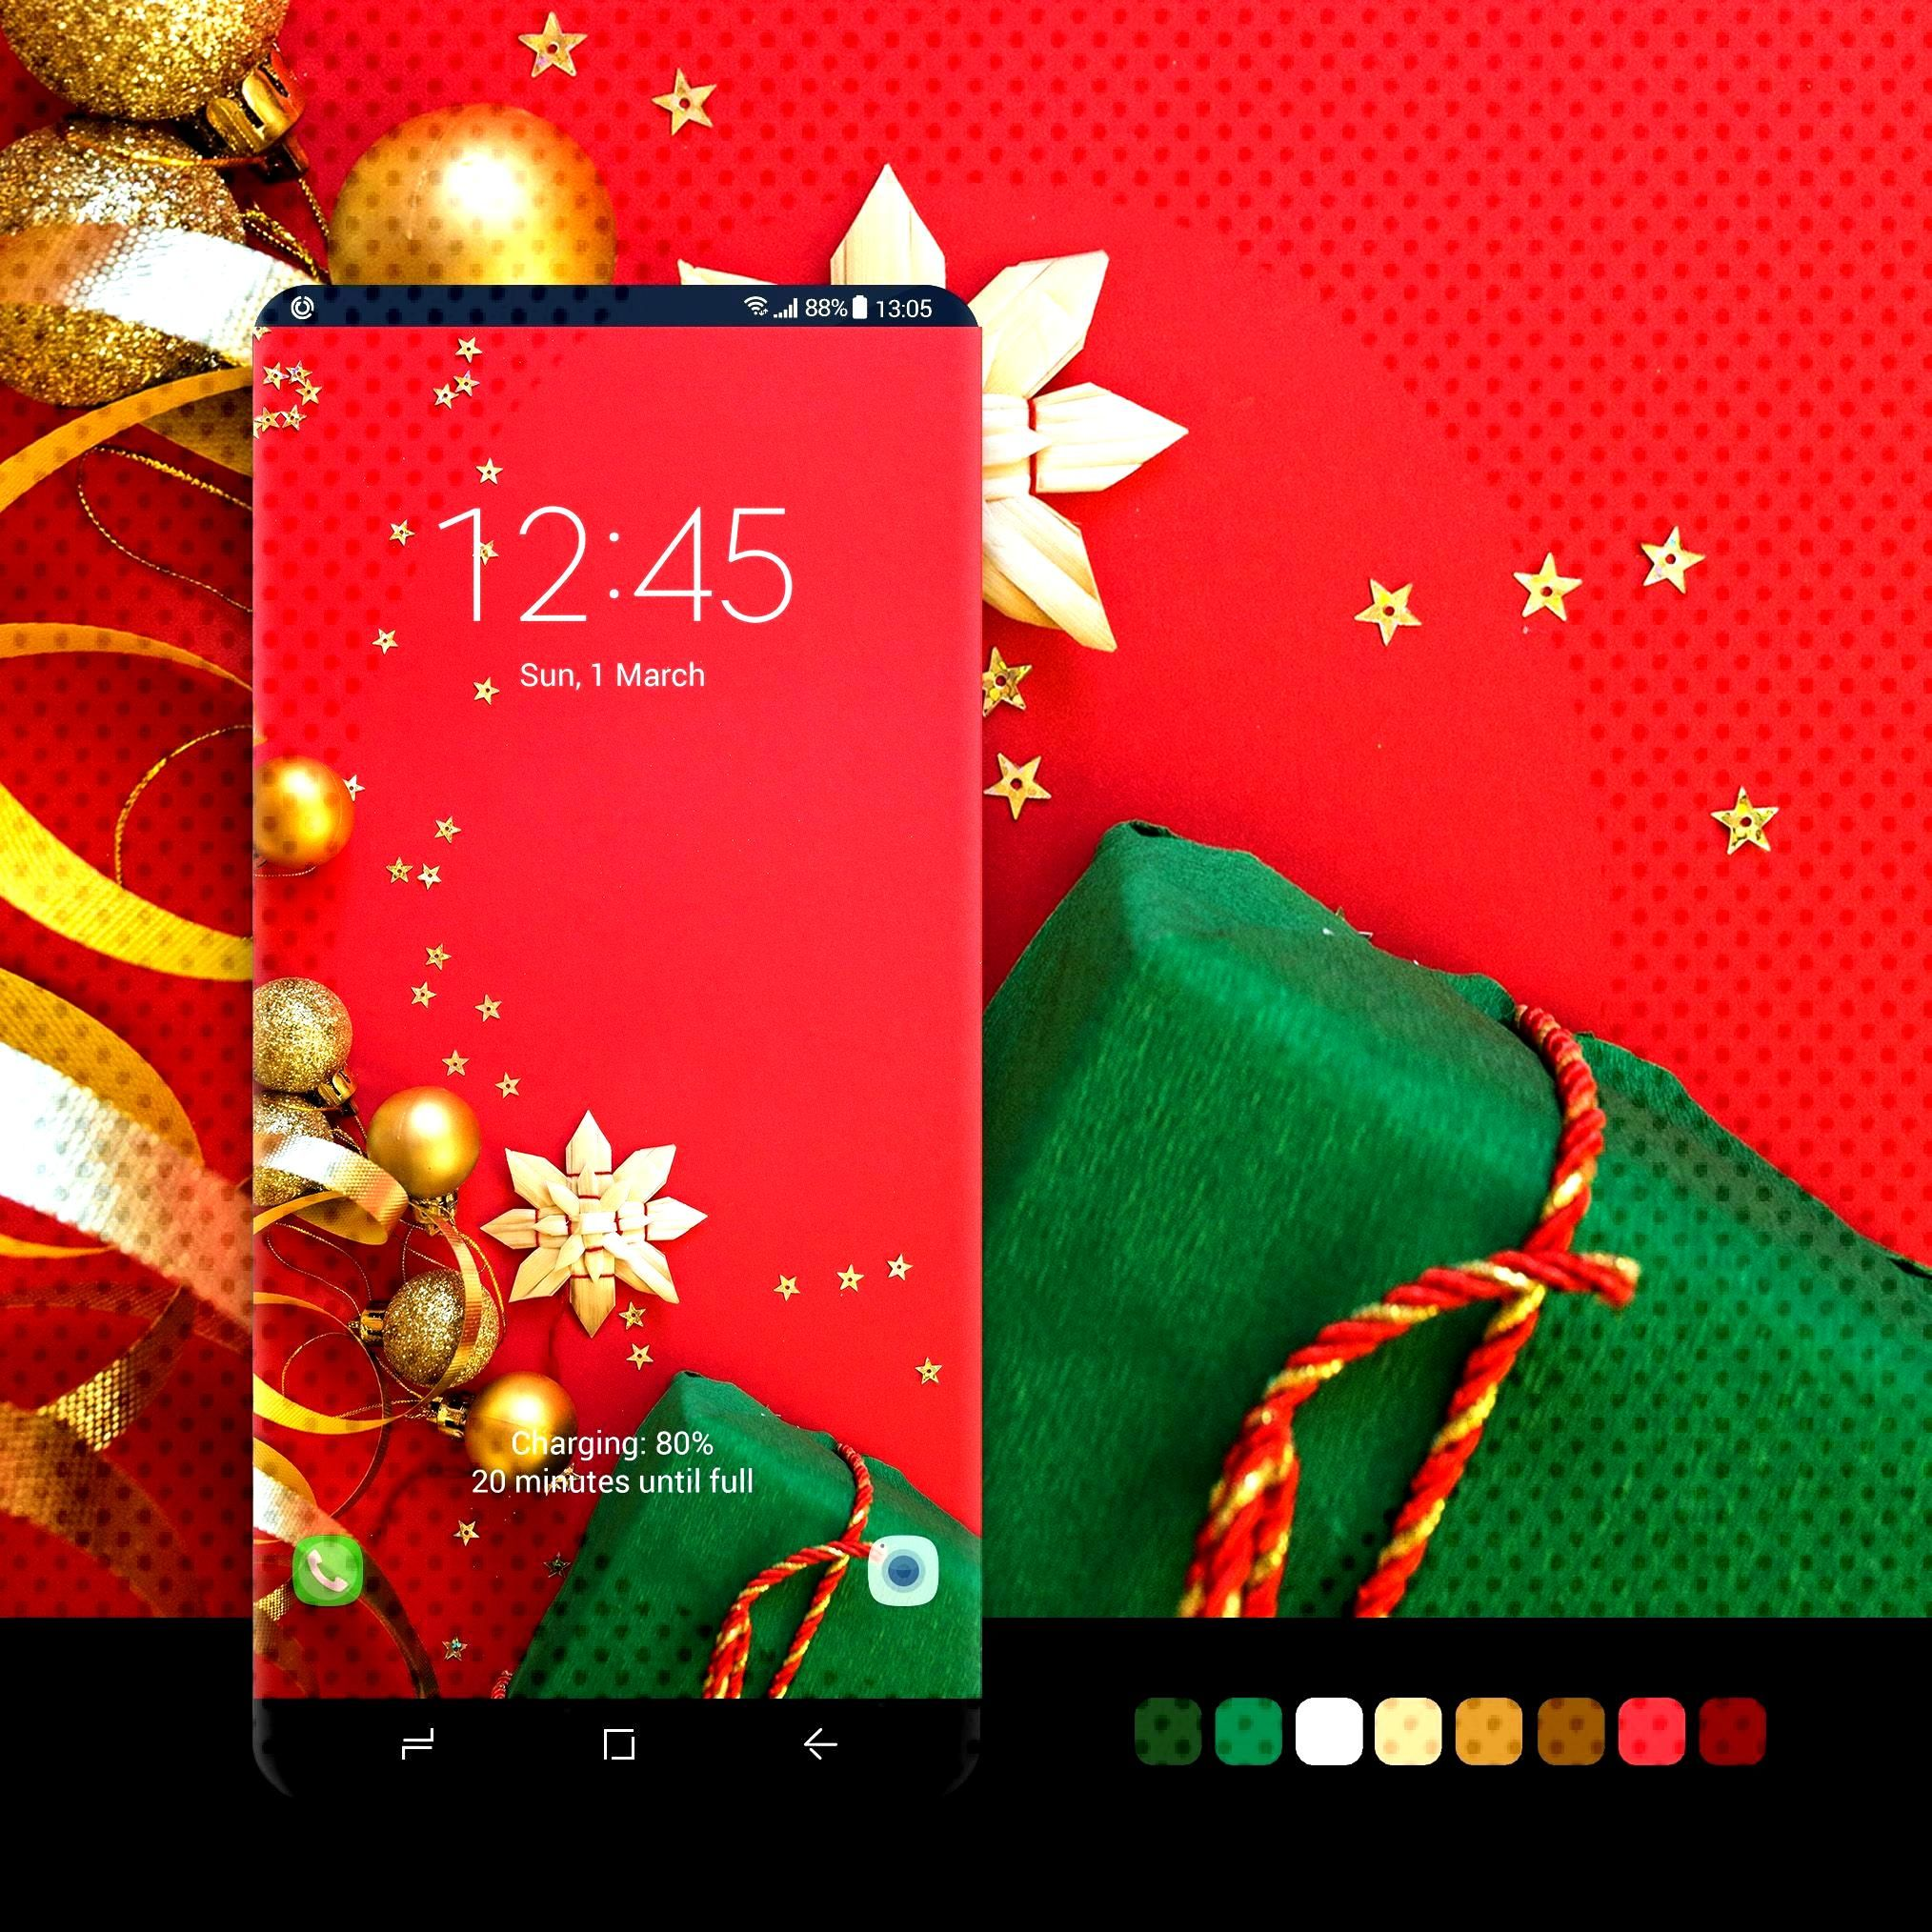 samsung wallpaper s7 edge Red Christmas Wallpaper